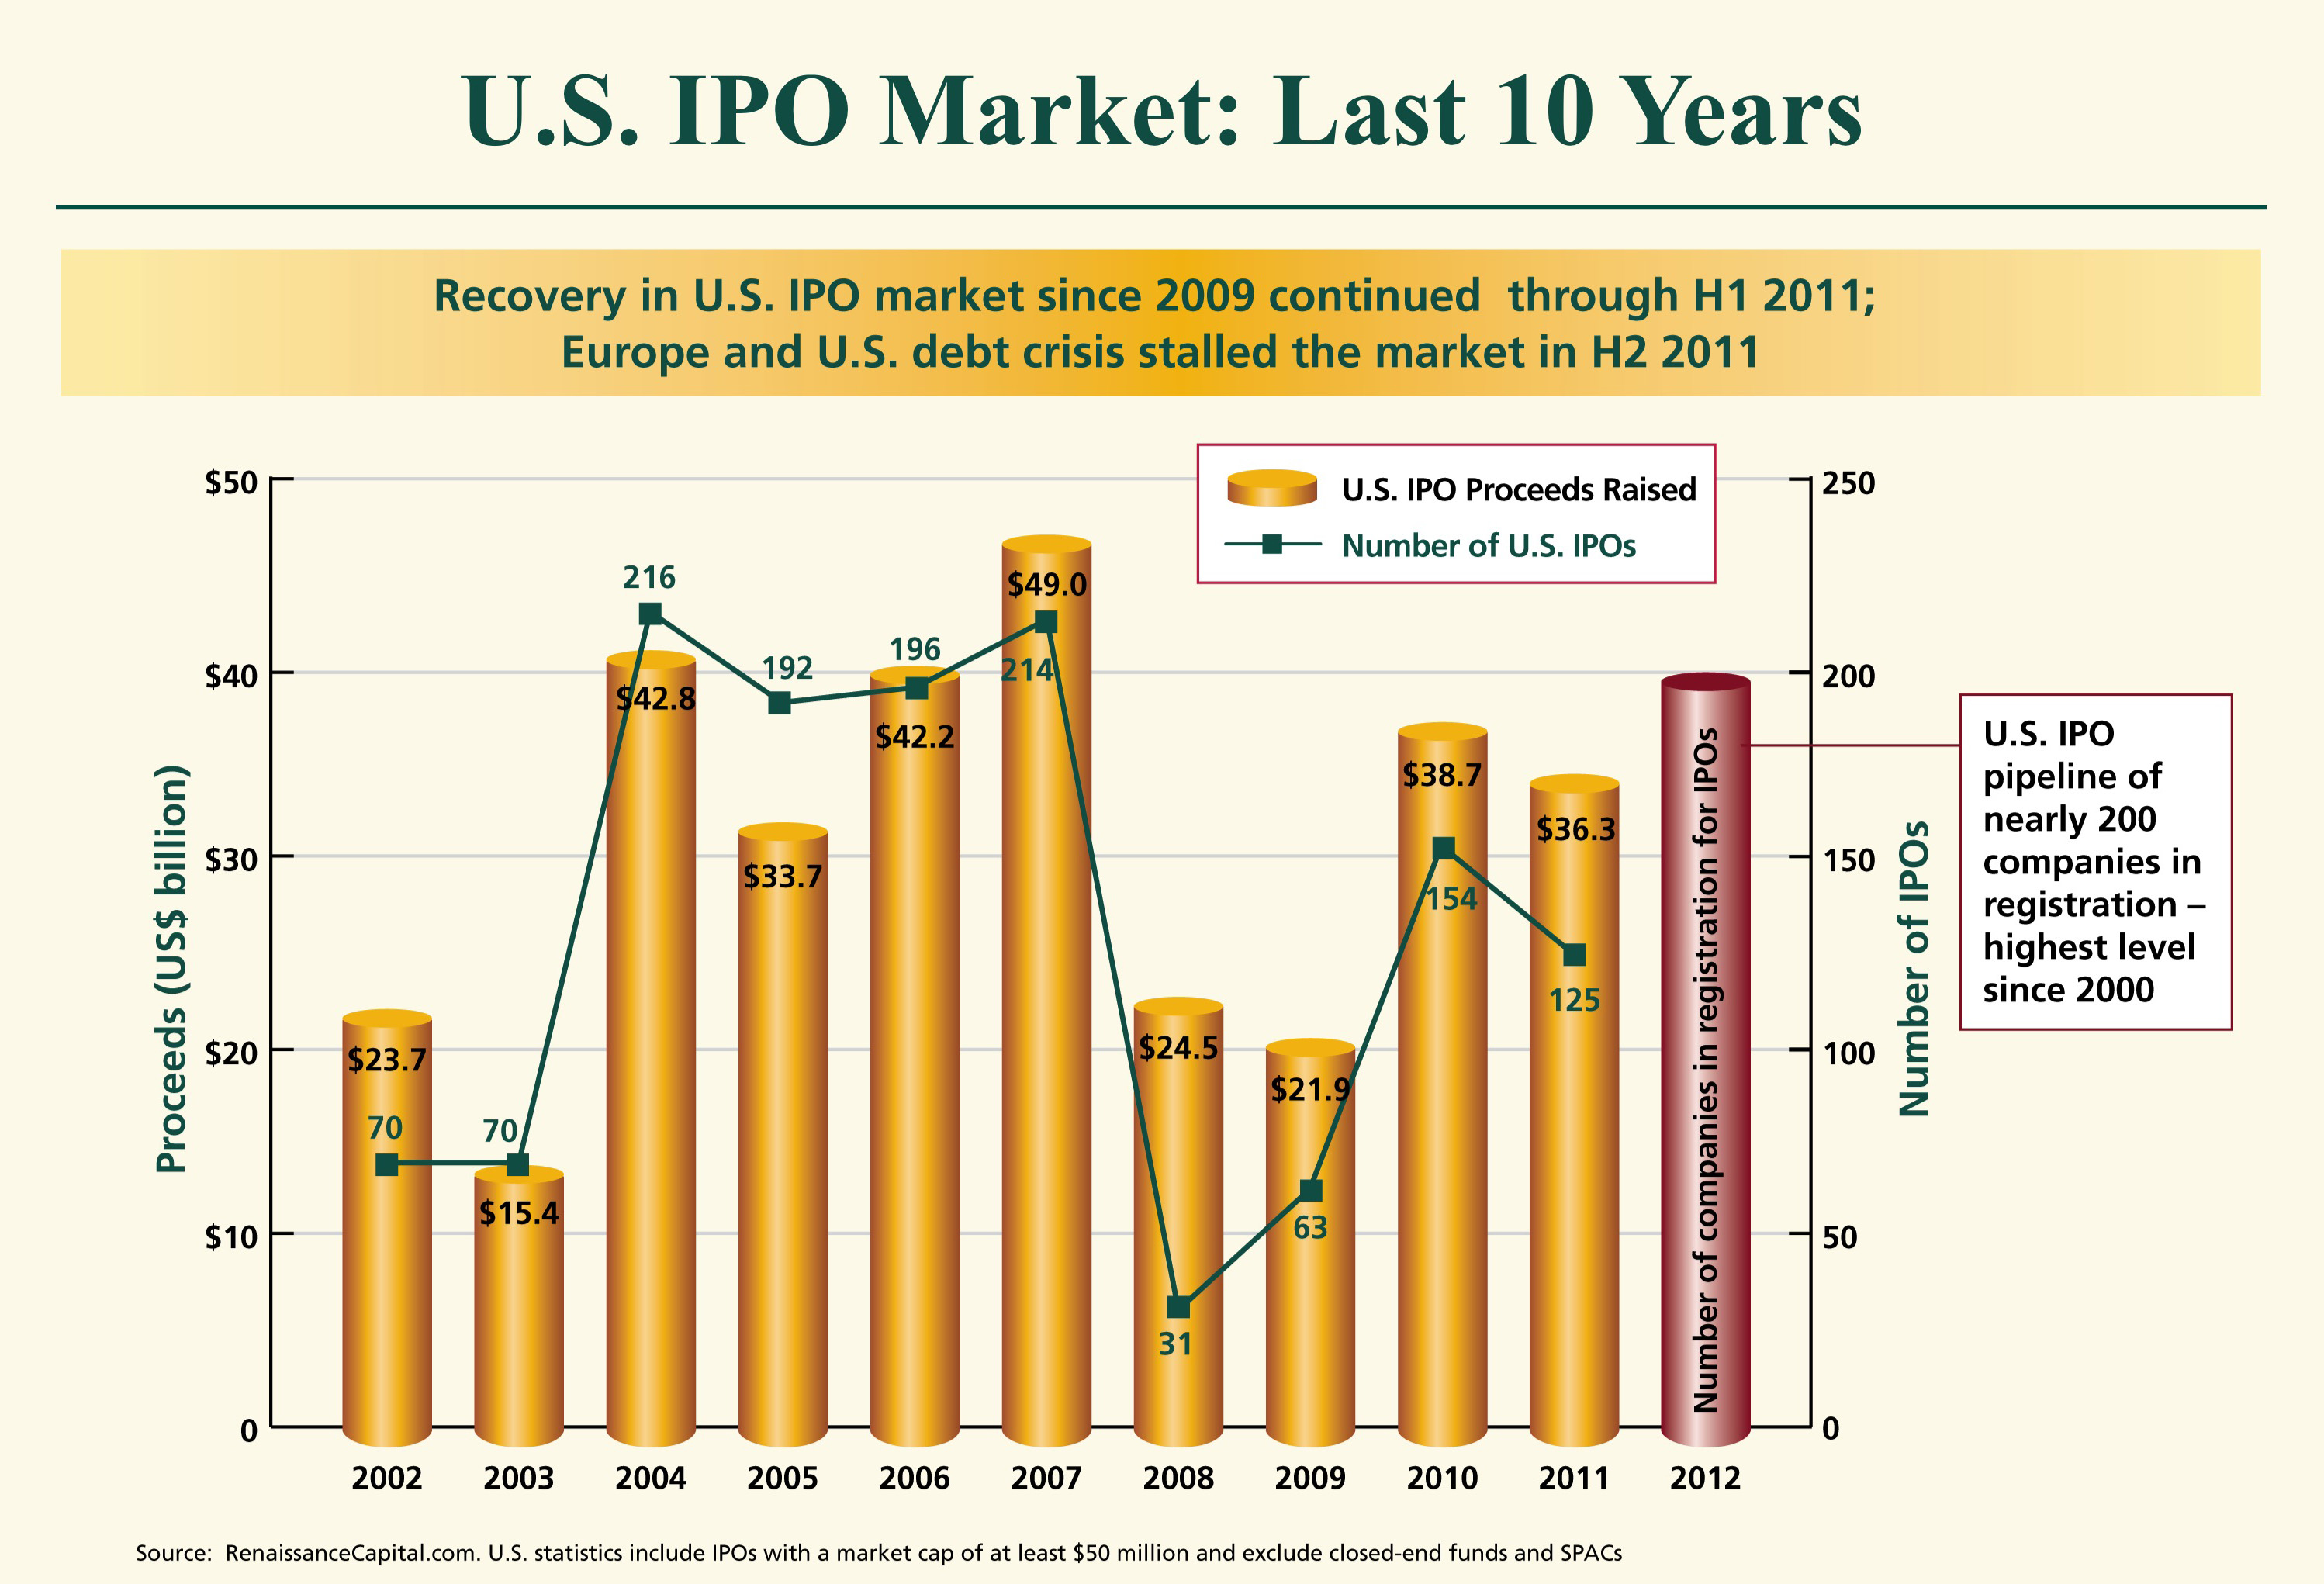 Reviving the u.s ipo market